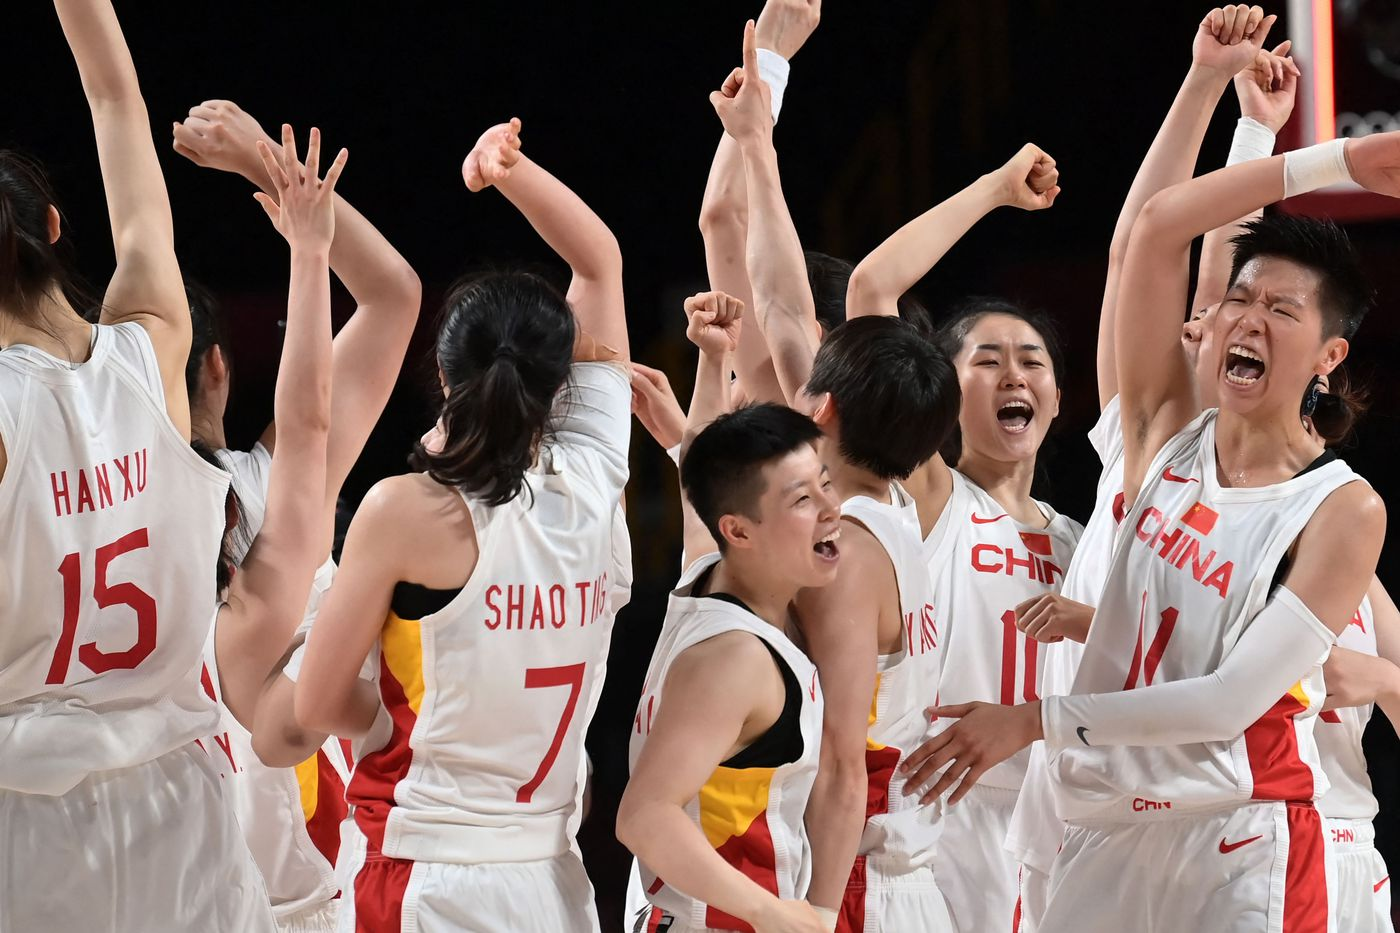 Olympics basketball has both a men's and women's tournament, which are made up of 12 teams each, while the … become a member to join in australia's biggest sporting debate, submit articles, receive updates straight to your inbox and keep up with your favourite teams and authors. Wxhajovglveqdm